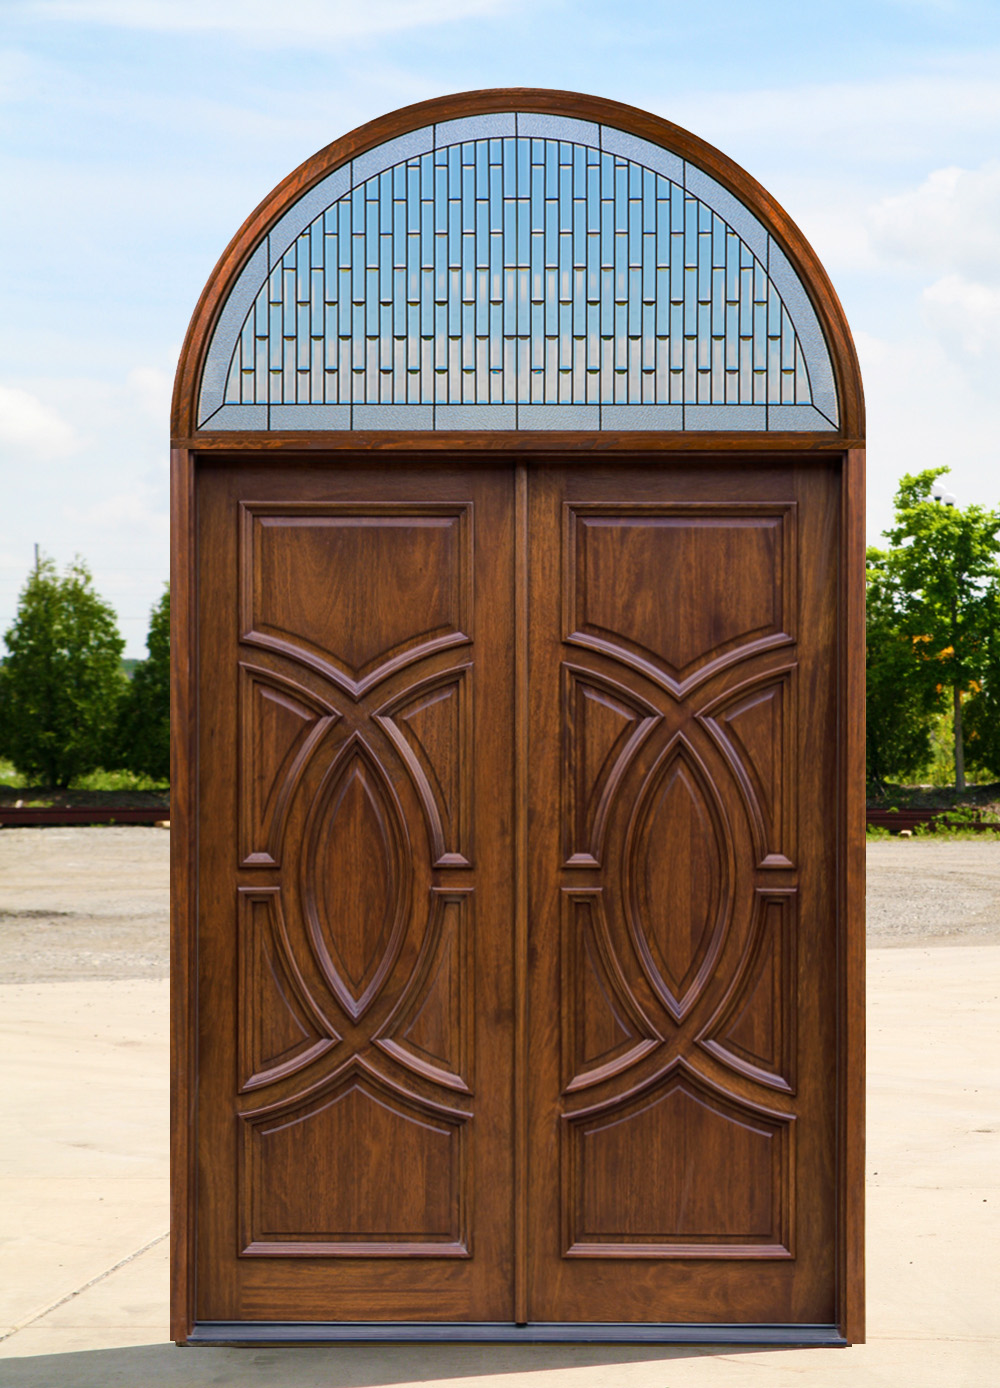 Double Doors with Arched Transom